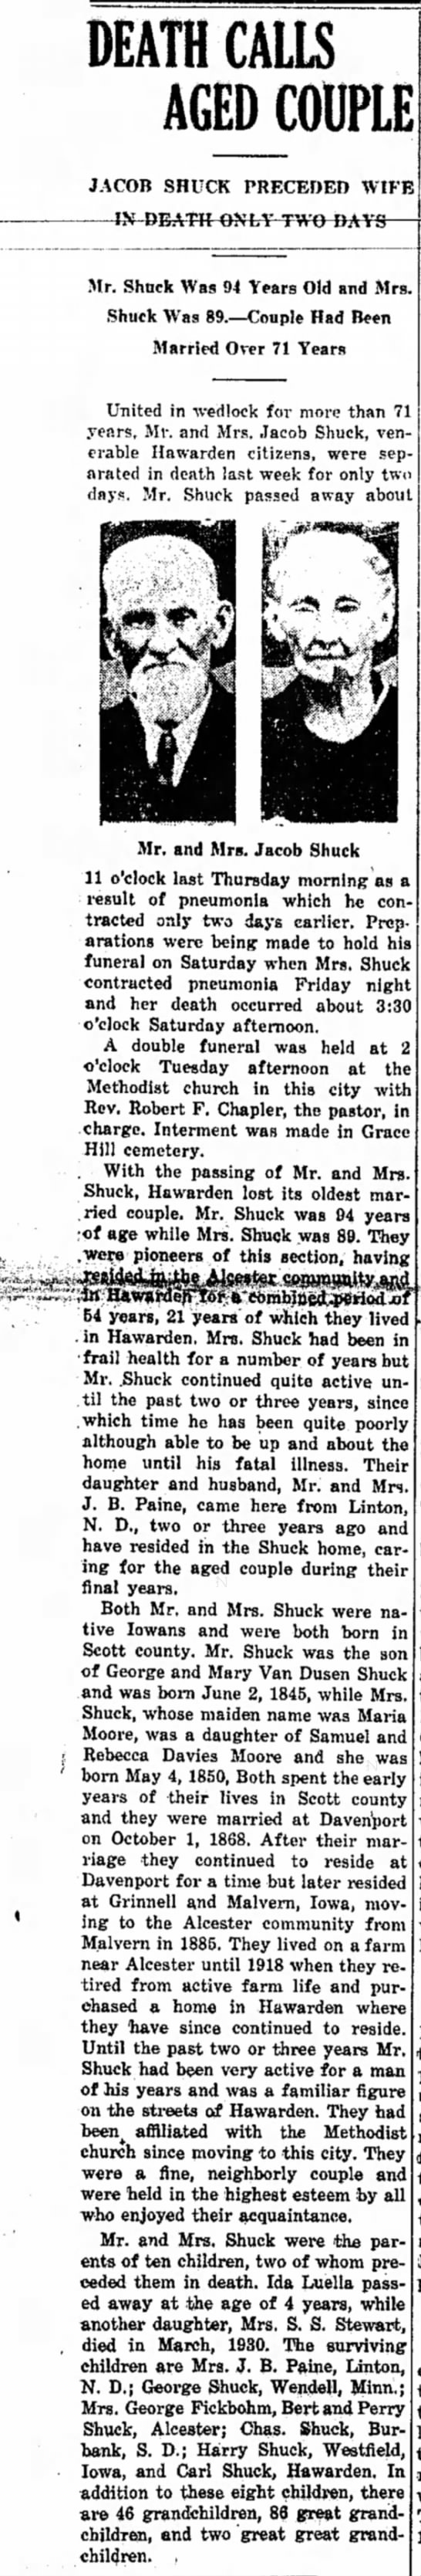 Jacob and Maria Shuck Death Notice - DEATH CALLS AGEDCOUPLE JACOB SHUCK PRECEDED...